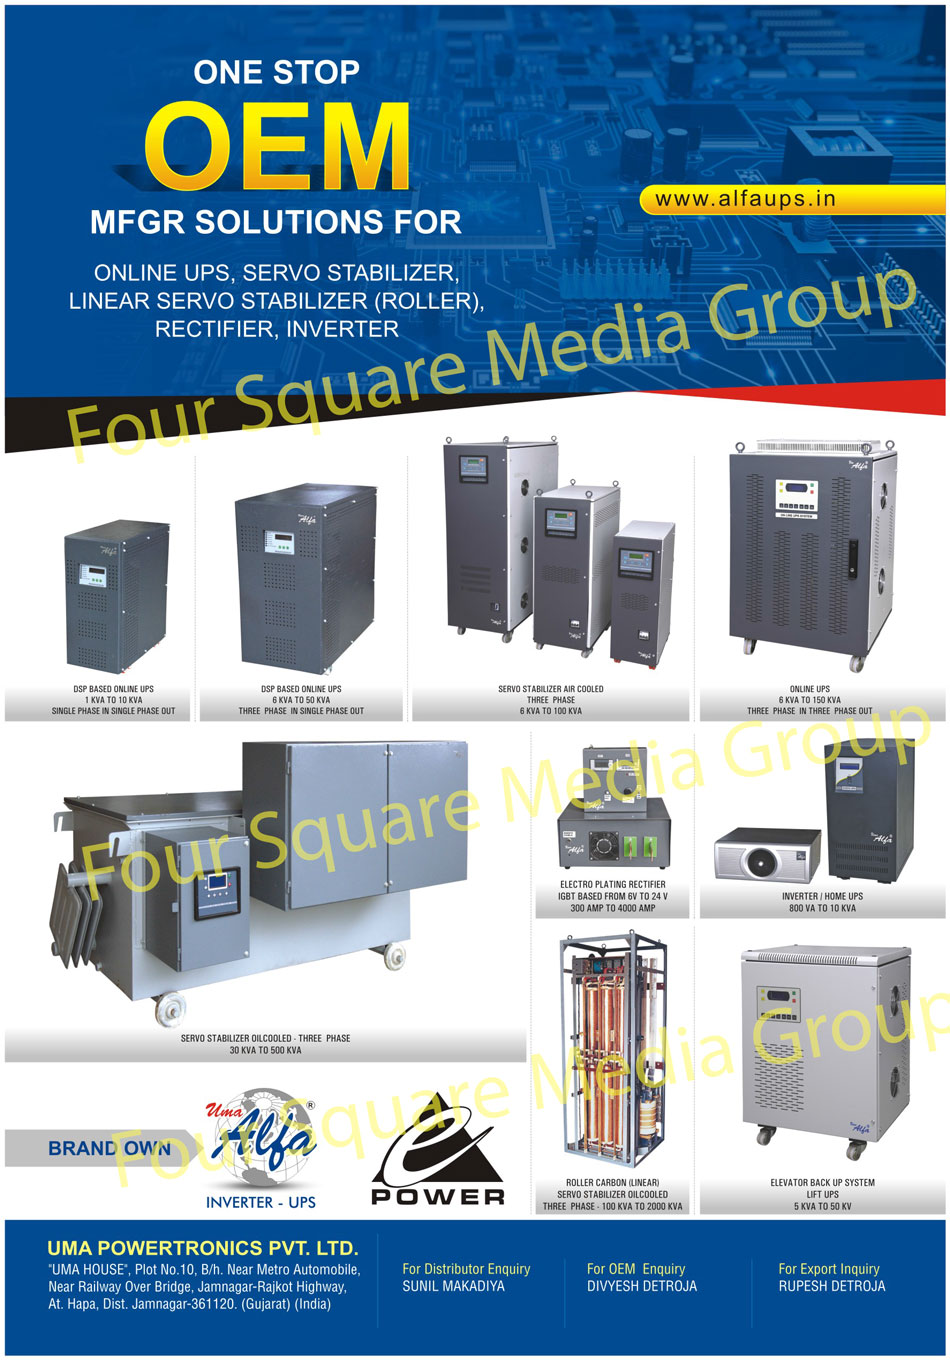 Online UPS, Servo Stabilizer, Battery Charger, Home UPS, Lift UPS, Lift Inverter, Oil Cooled Servo Stabilizer, Battery Charger, Sinewave Home Ups, Digital Home Ups, Air Cooled Servo Stabilizer, Linear Servo Stabilizer, Rectifier, Inverter, Elevator Back Up System Lift Ups, Electro Plating Rectifiers